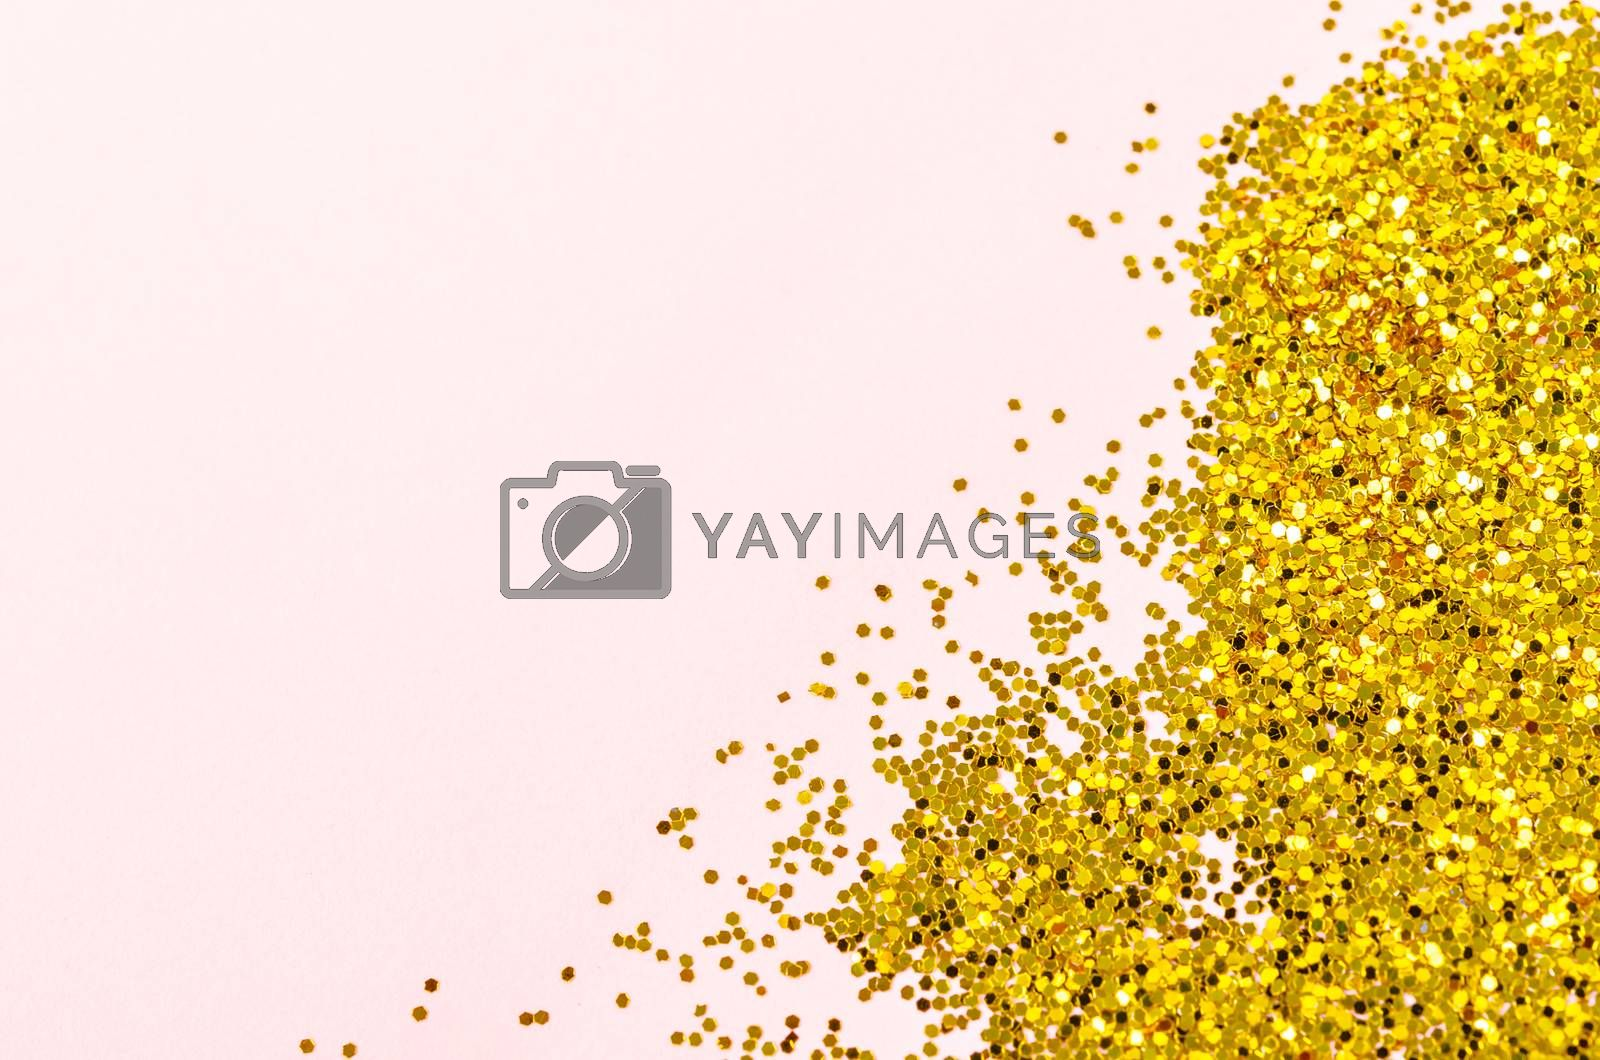 Small golden glitter on pink background with empty space for your text or message.